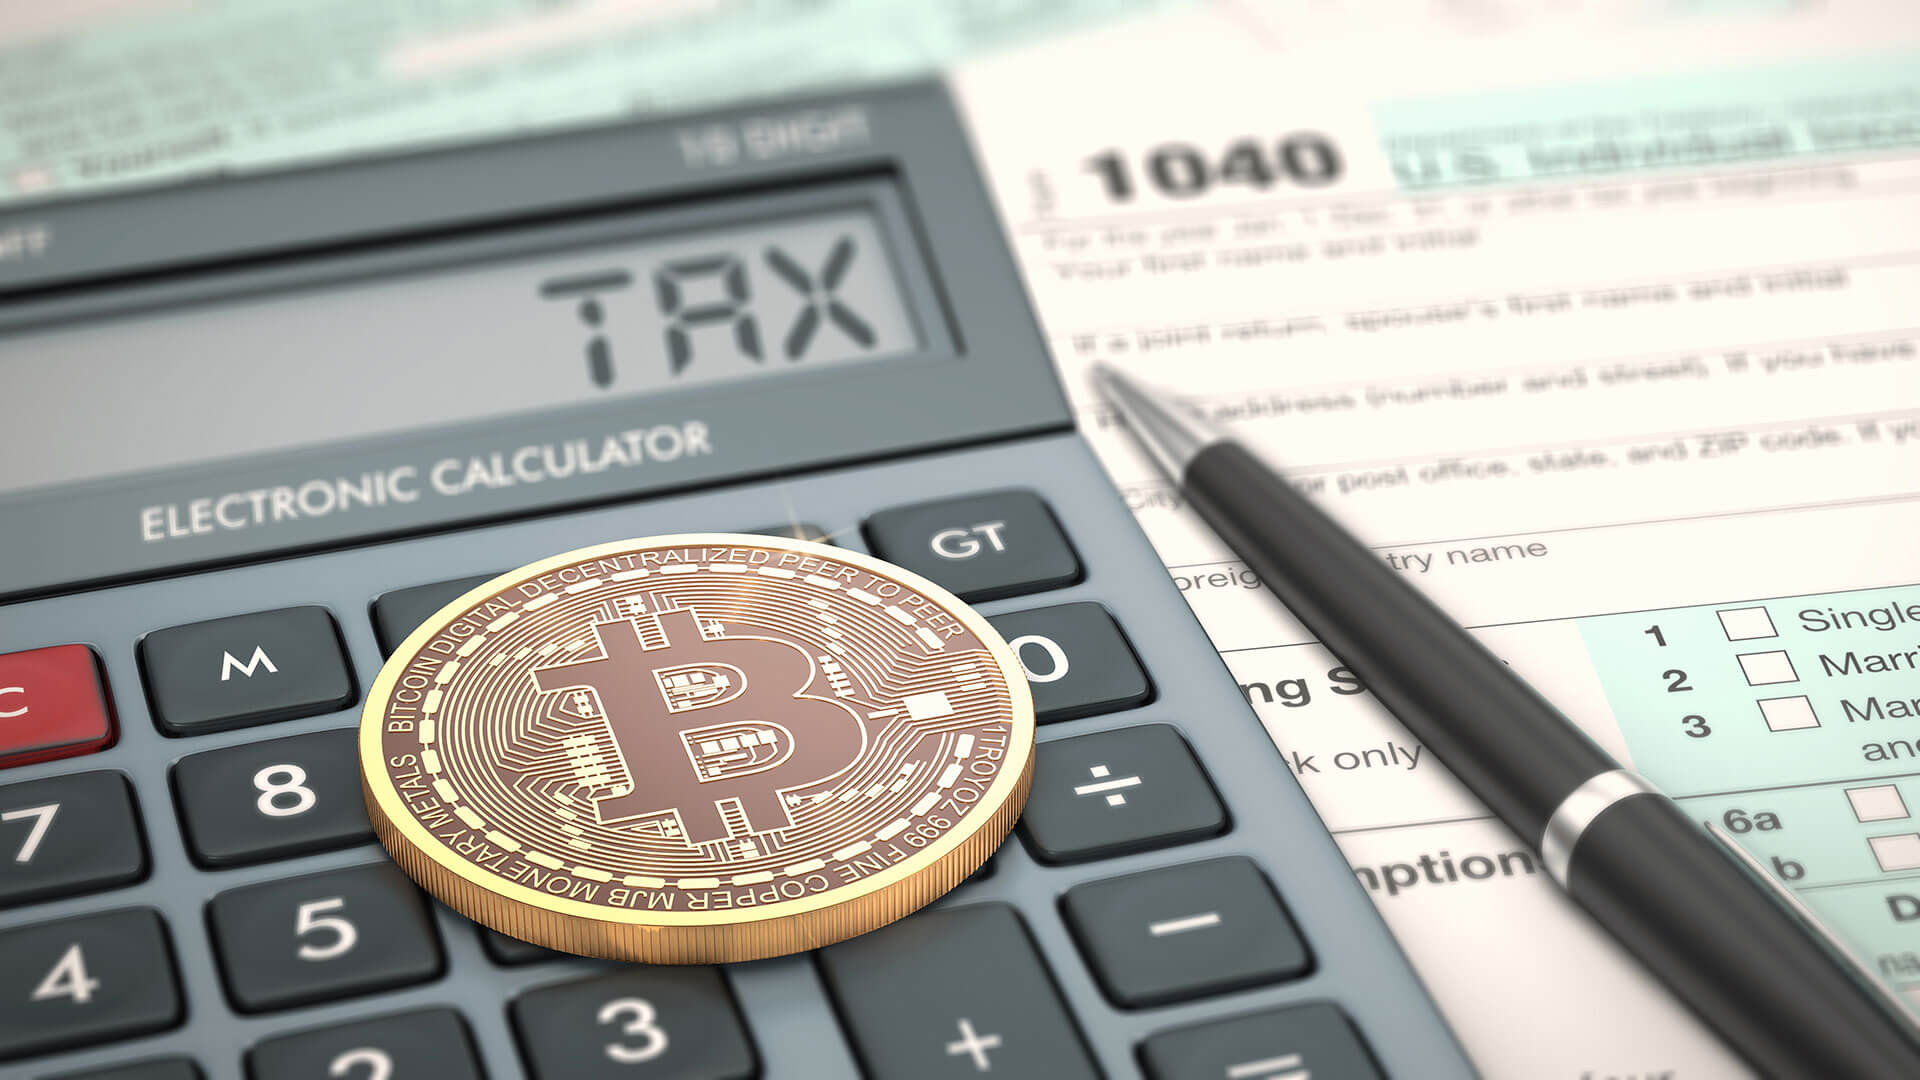 Bitcoin on top of calculator beside tax form and pen